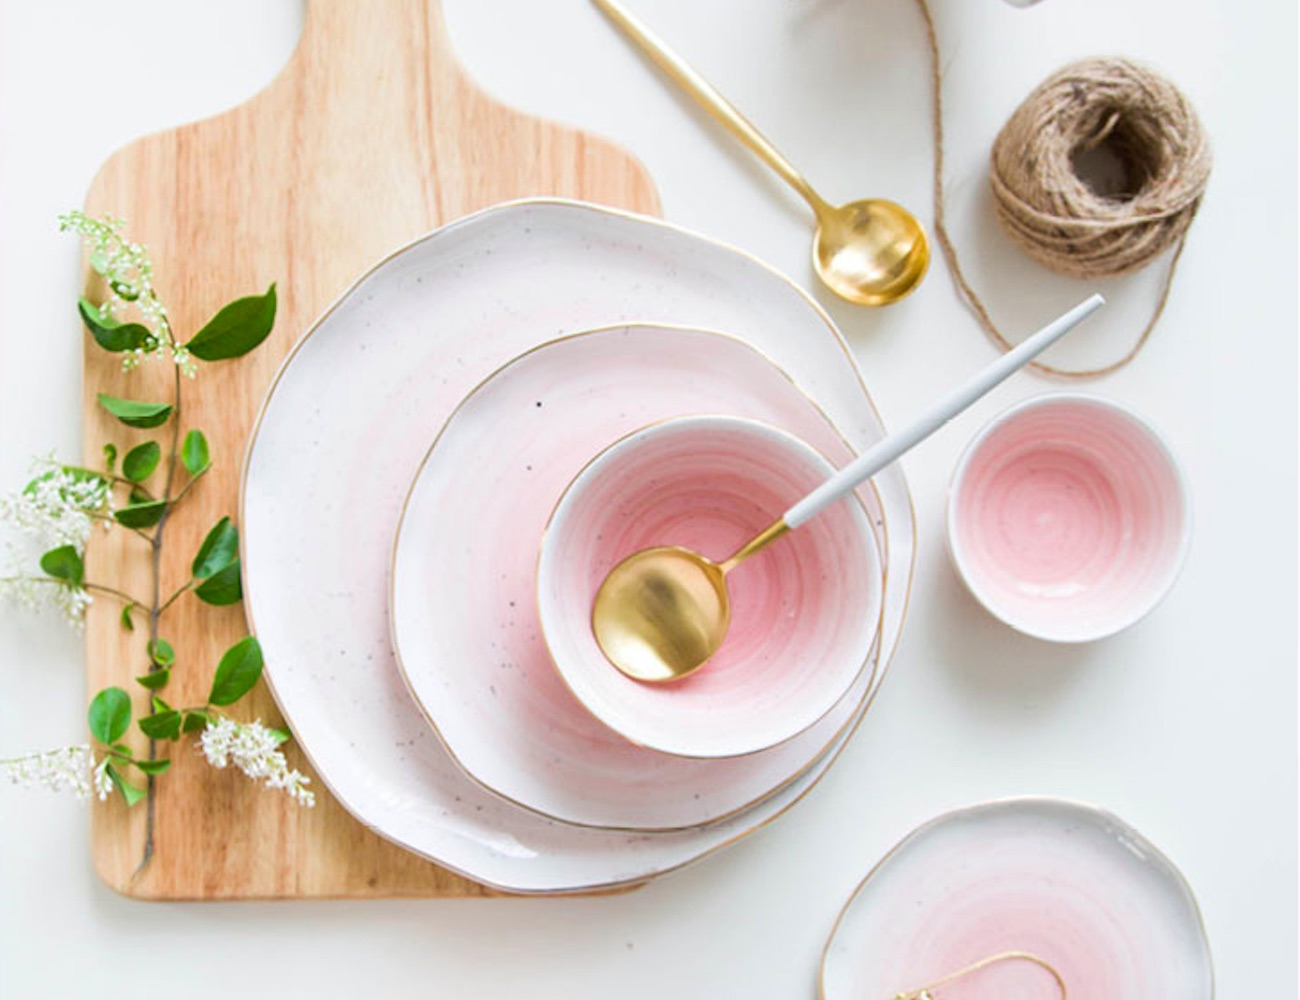 Gold Rim Ceramic Dining Dishes are exceptionally beautiful